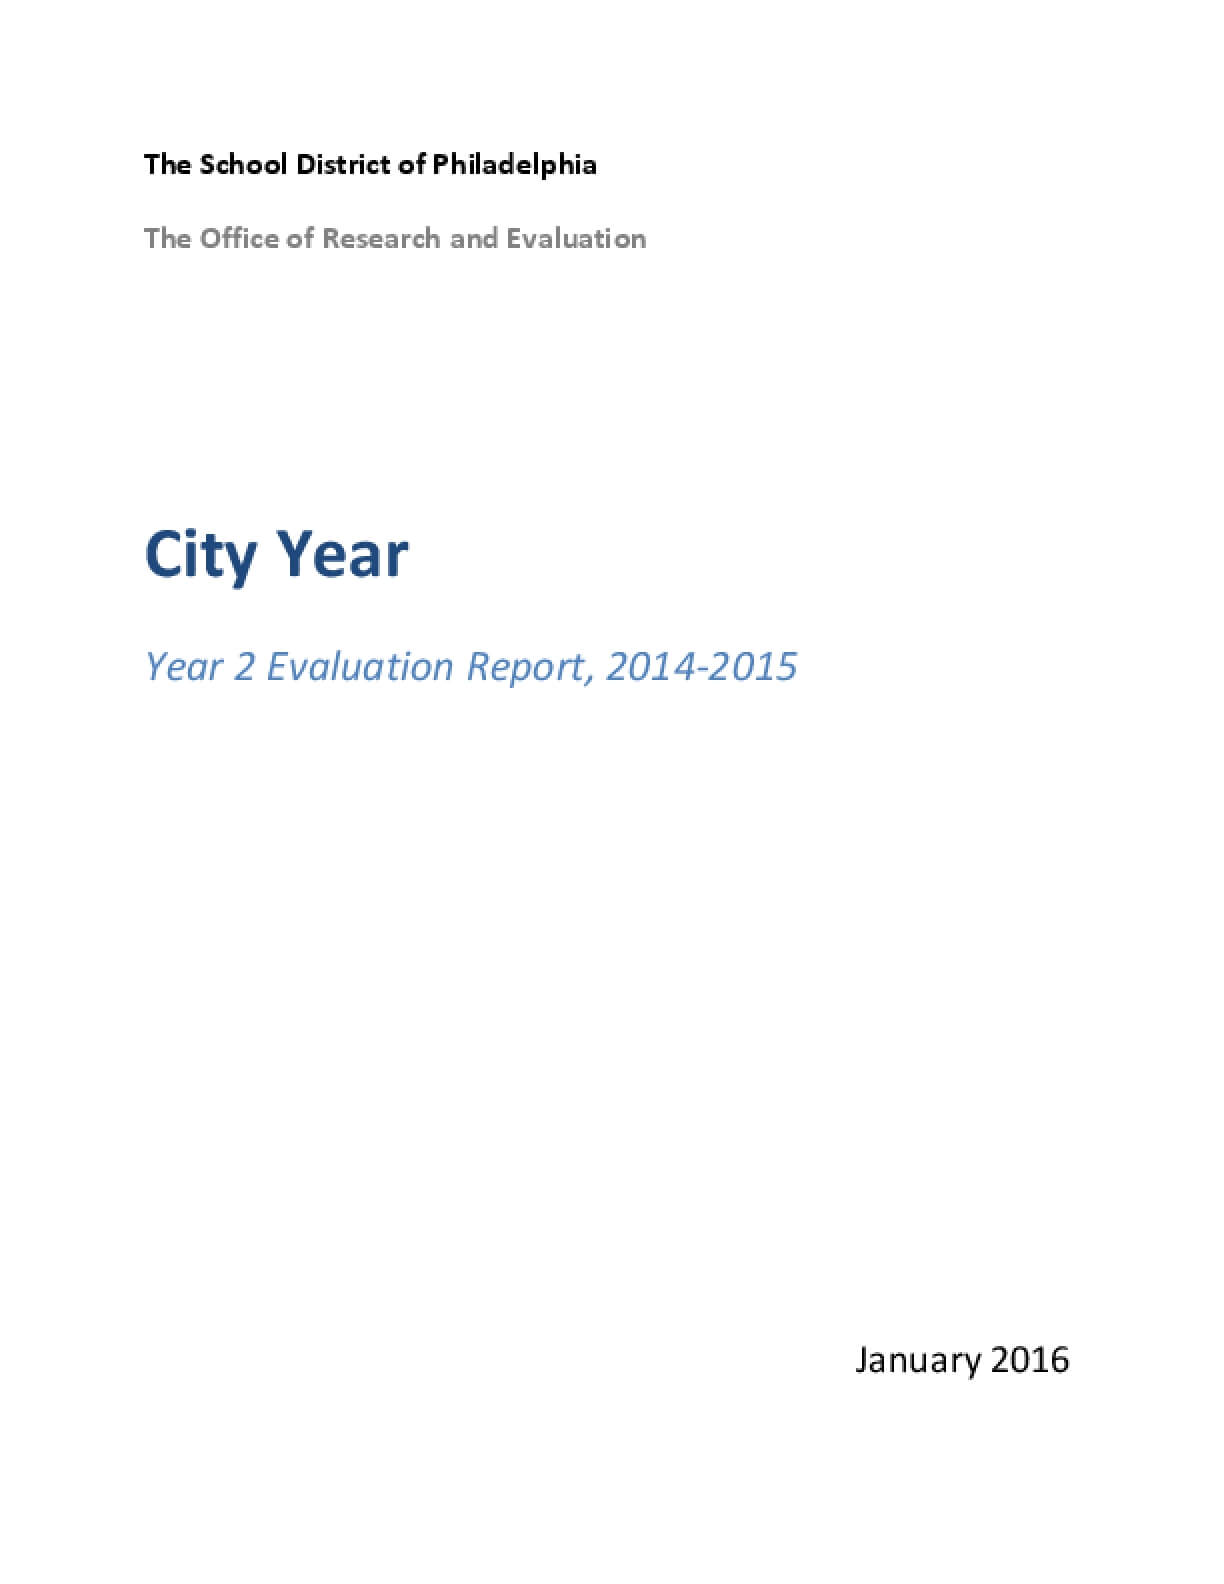 City Year - Year 2 Evaluation Report, 2014-2015